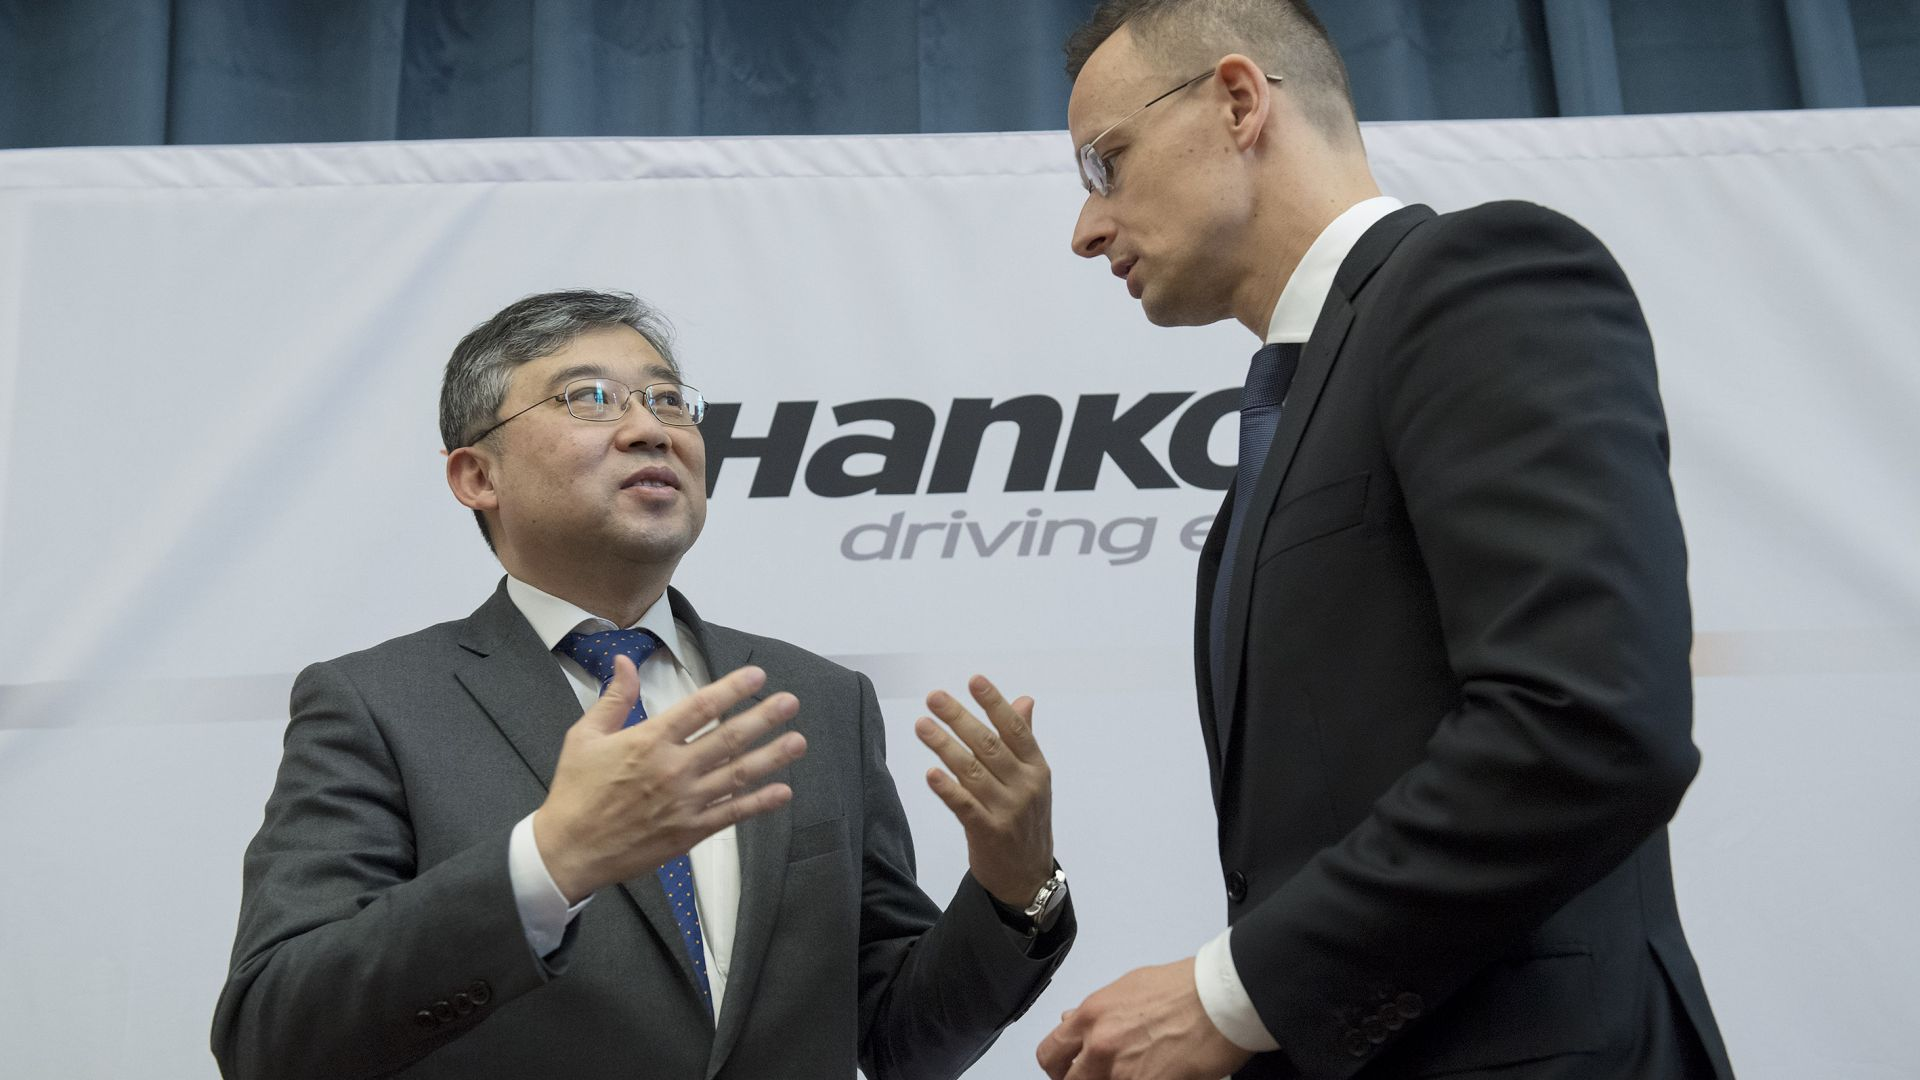 The European production site of Hankook to be extended by a new unit